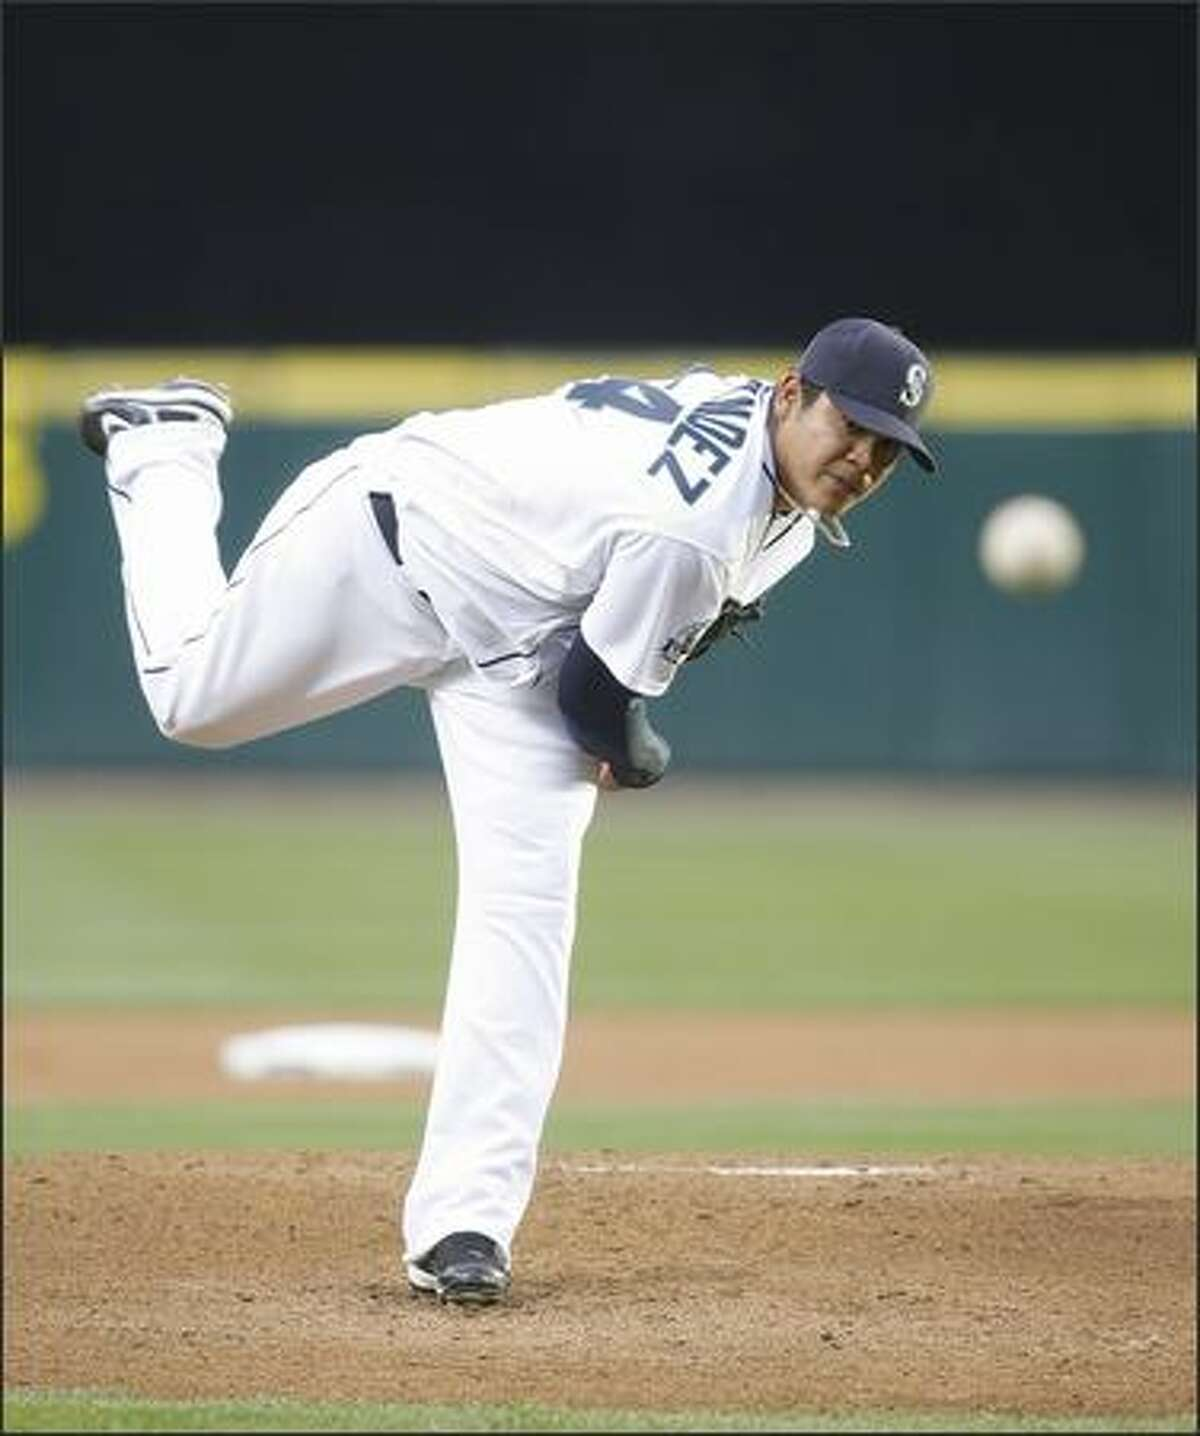 Mariners starter Felix Hernandez gave up three runs in the first inning to end his 17-inning scoreless streak.